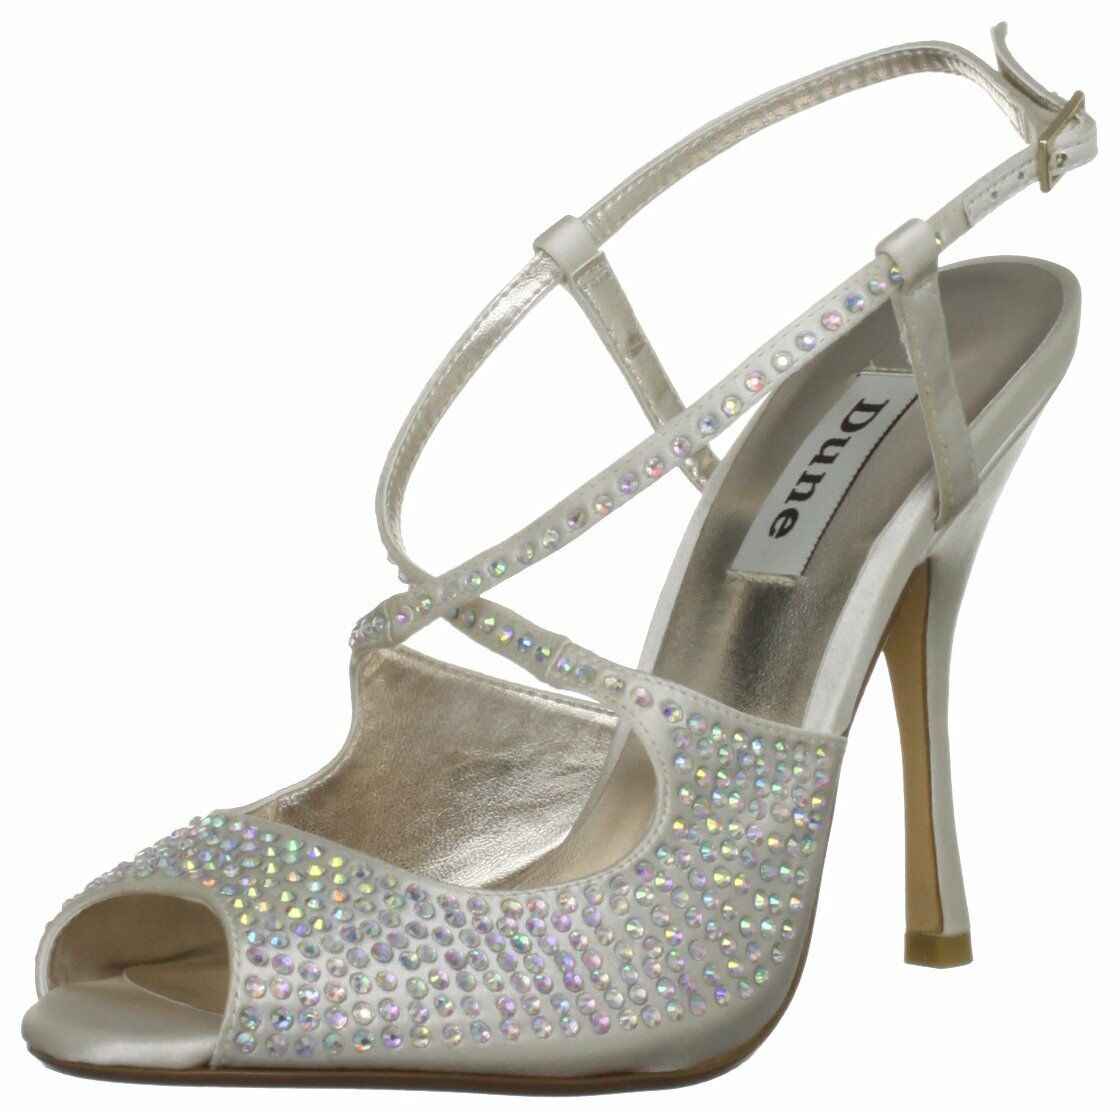 BN   DUNE SIZE 4 5 6 7 8 IVORY CREAM SILVER DIAMANTE HANNERS BRIDAL SHOES